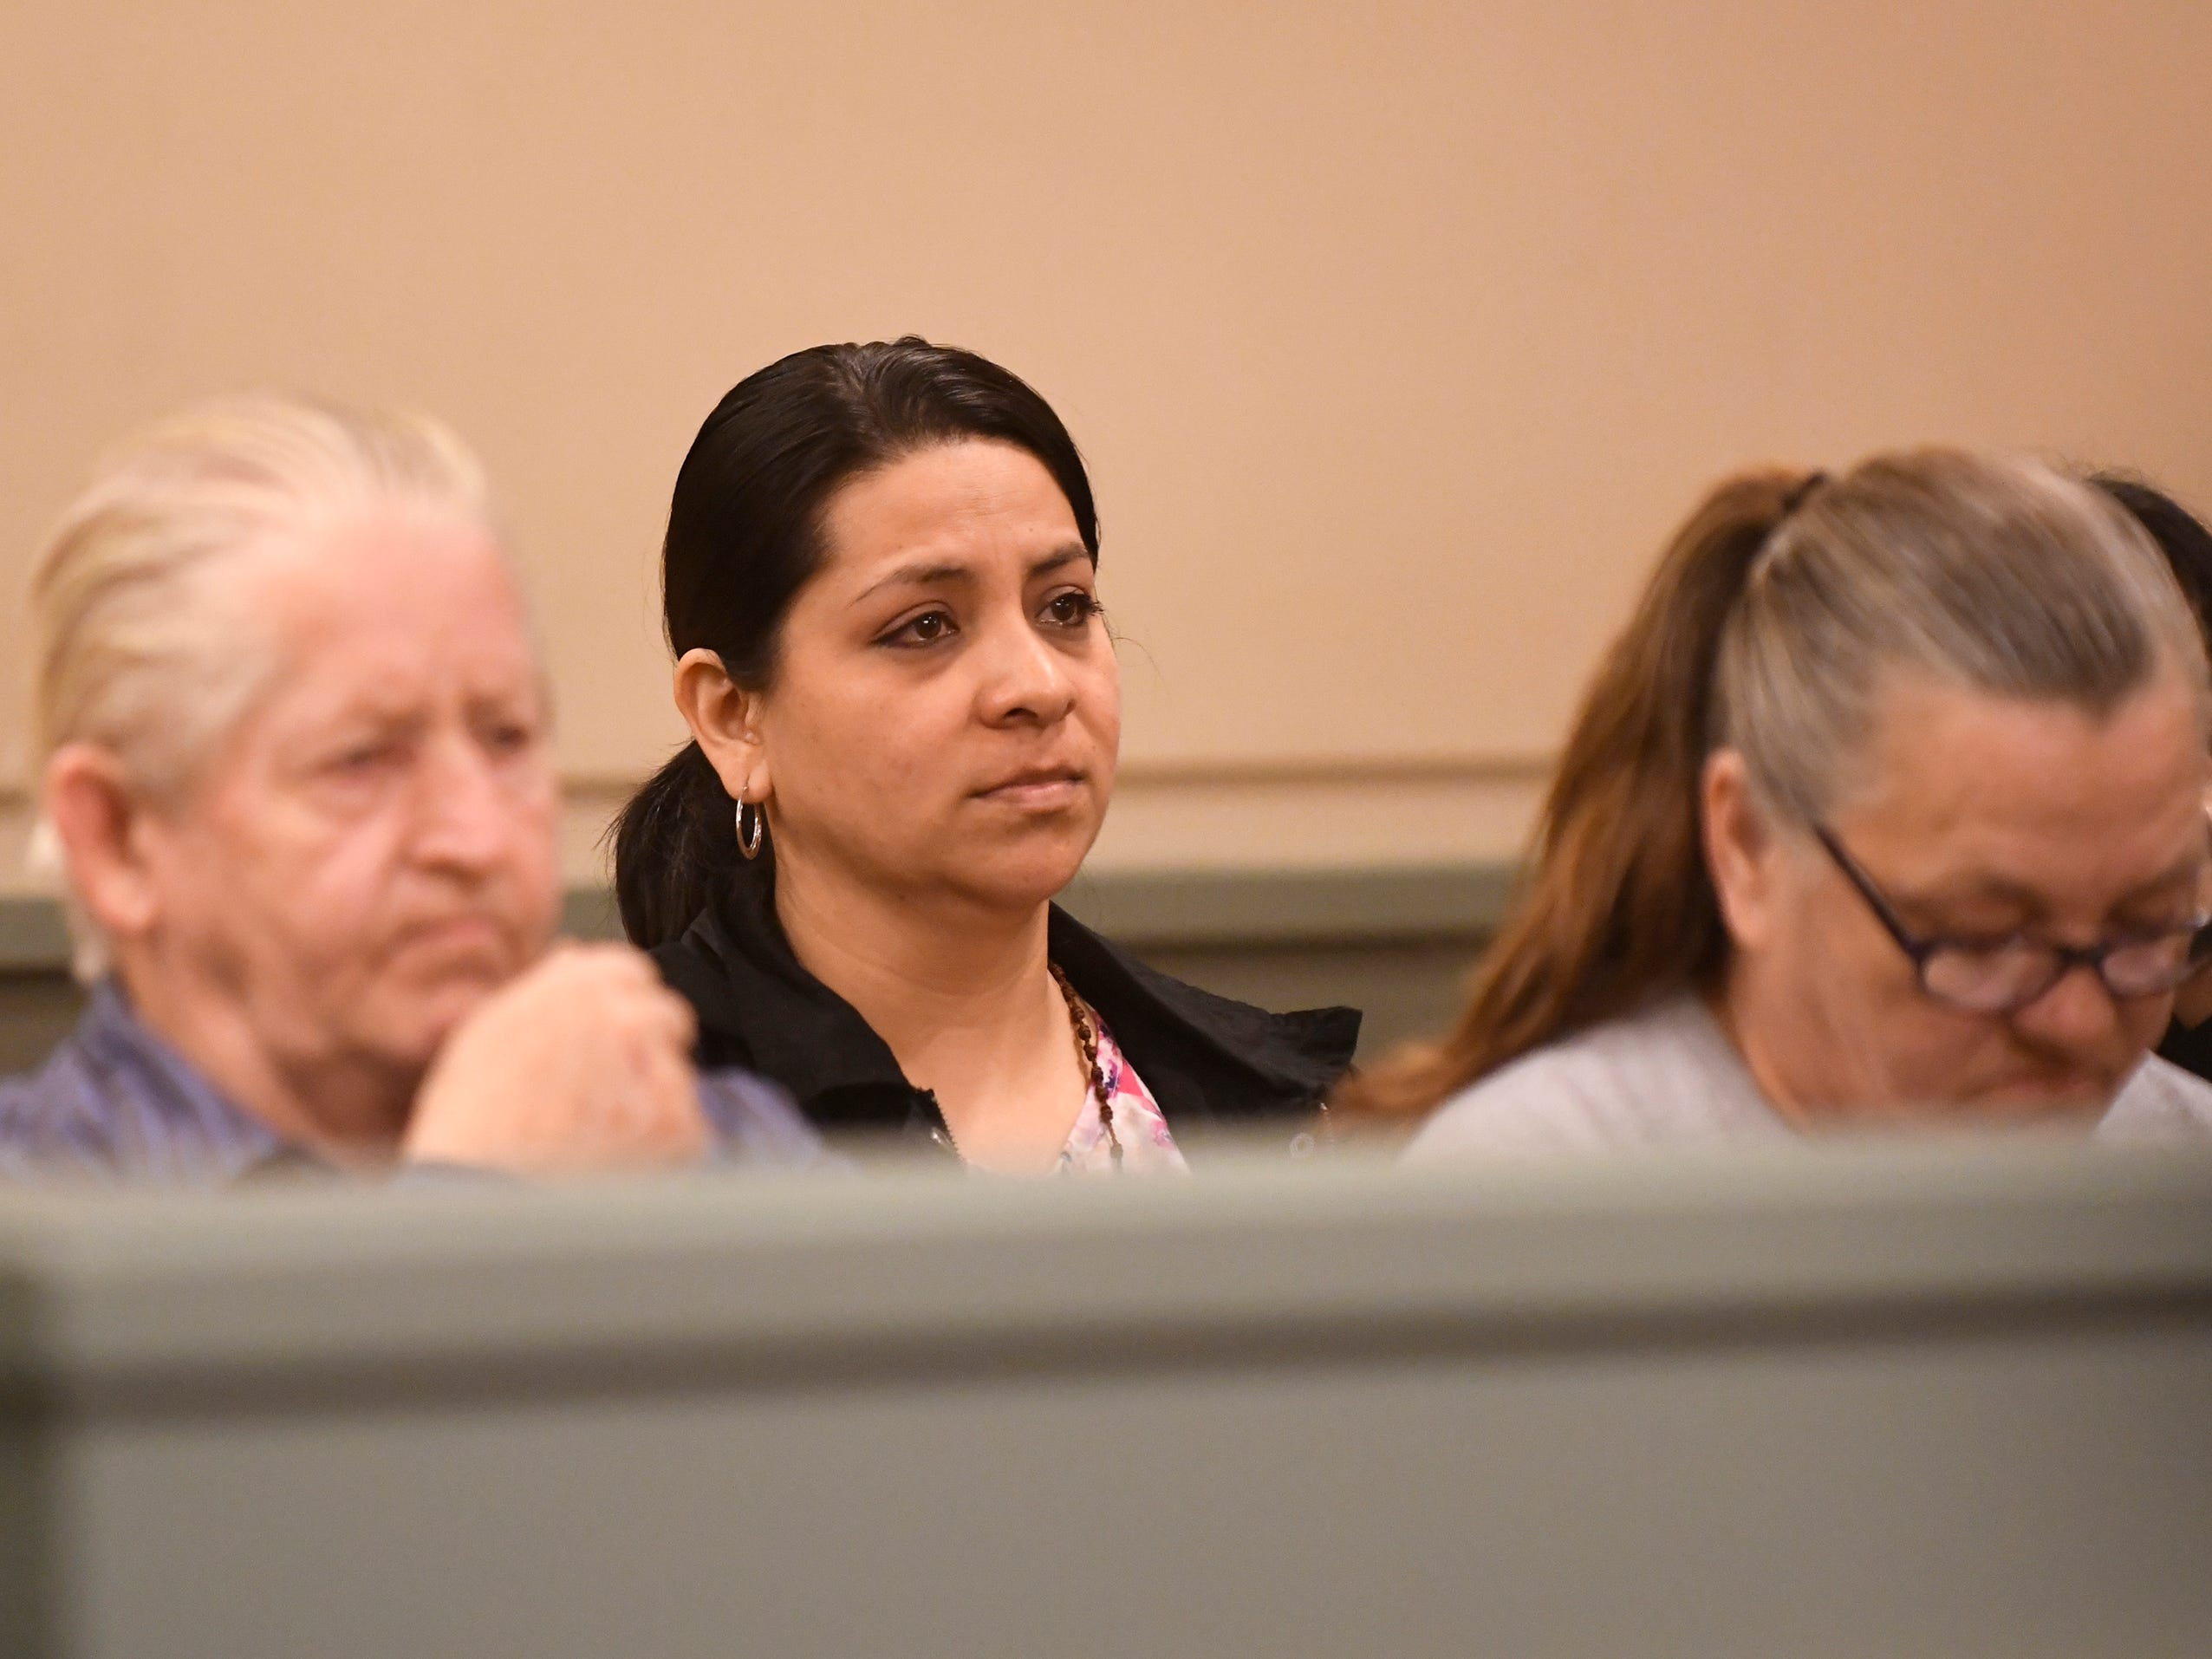 Family members of Neidy Ramirez listen to Judge Robert Malestein during Ricardo Carrillo-Santiago's sentencing on Friday, April 12, 2019.